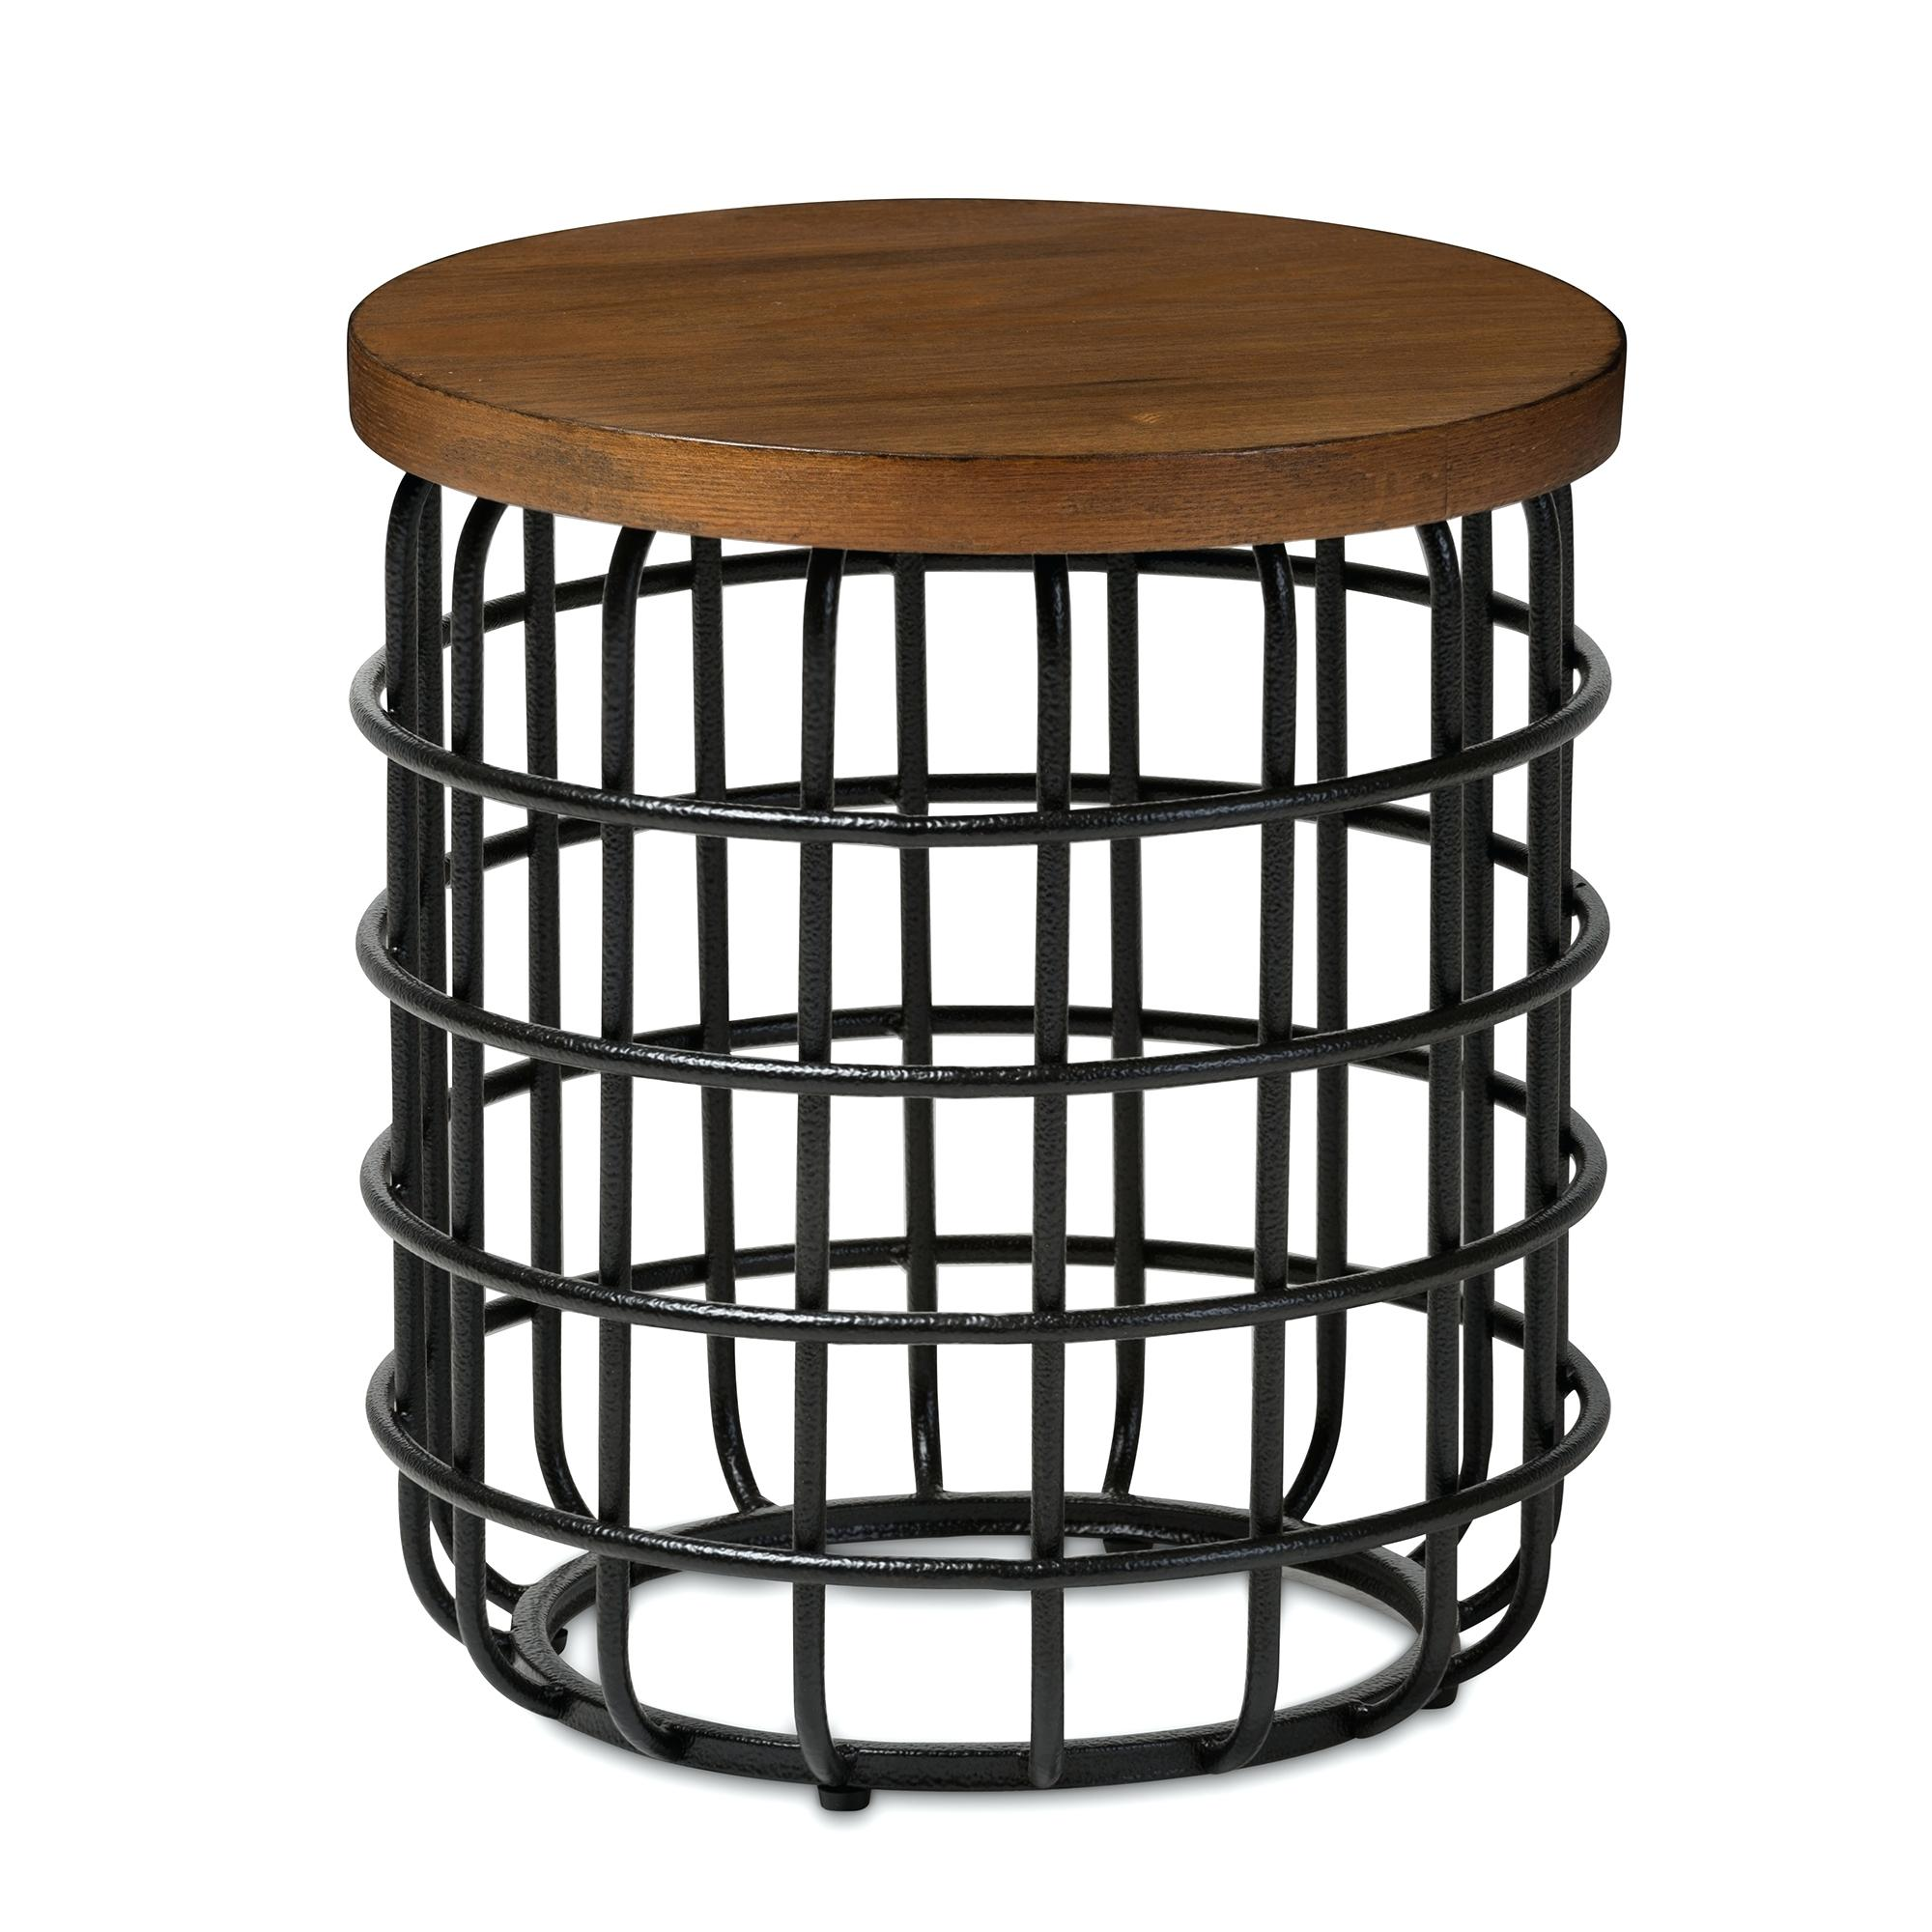 avani mango table sbud wood accent studio rustic industrial style antique black textured finished metal distressed tables drum wooden chocolate brown end orange bedside lamp round